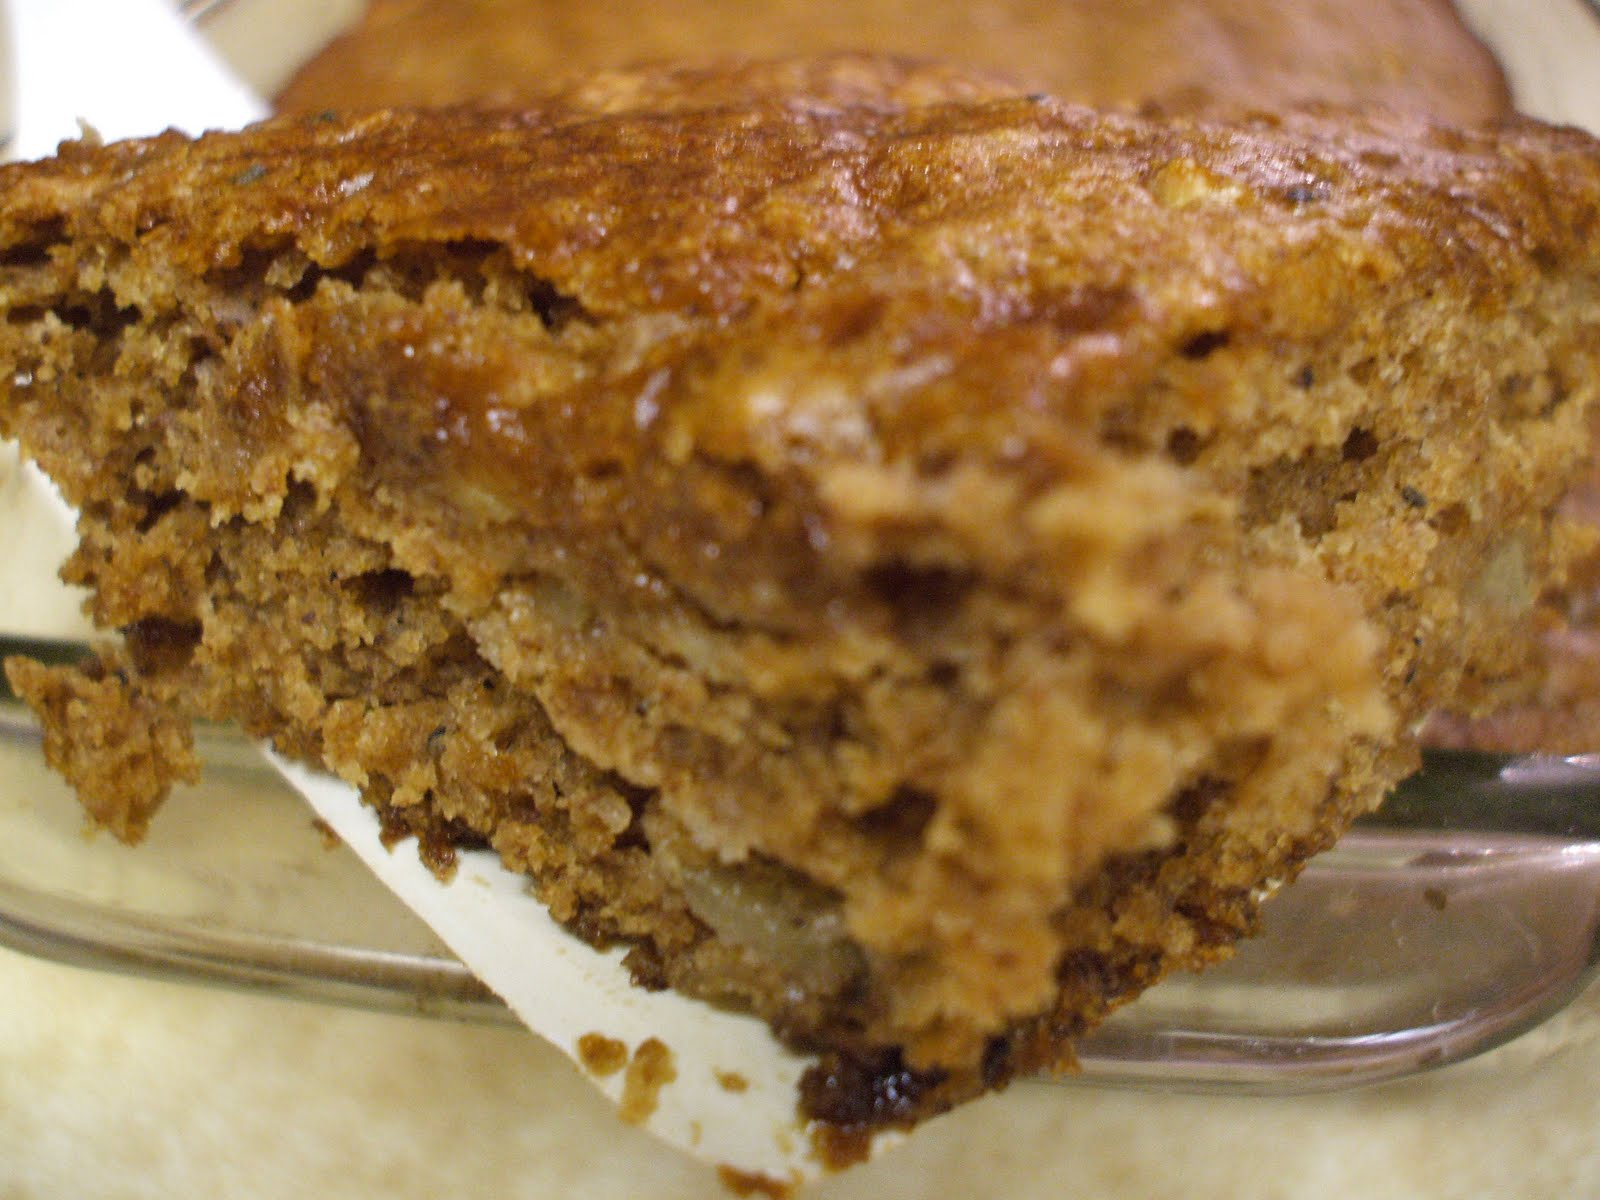 ... with it apple cake a frugal apple cake a delicious frugal apple cake